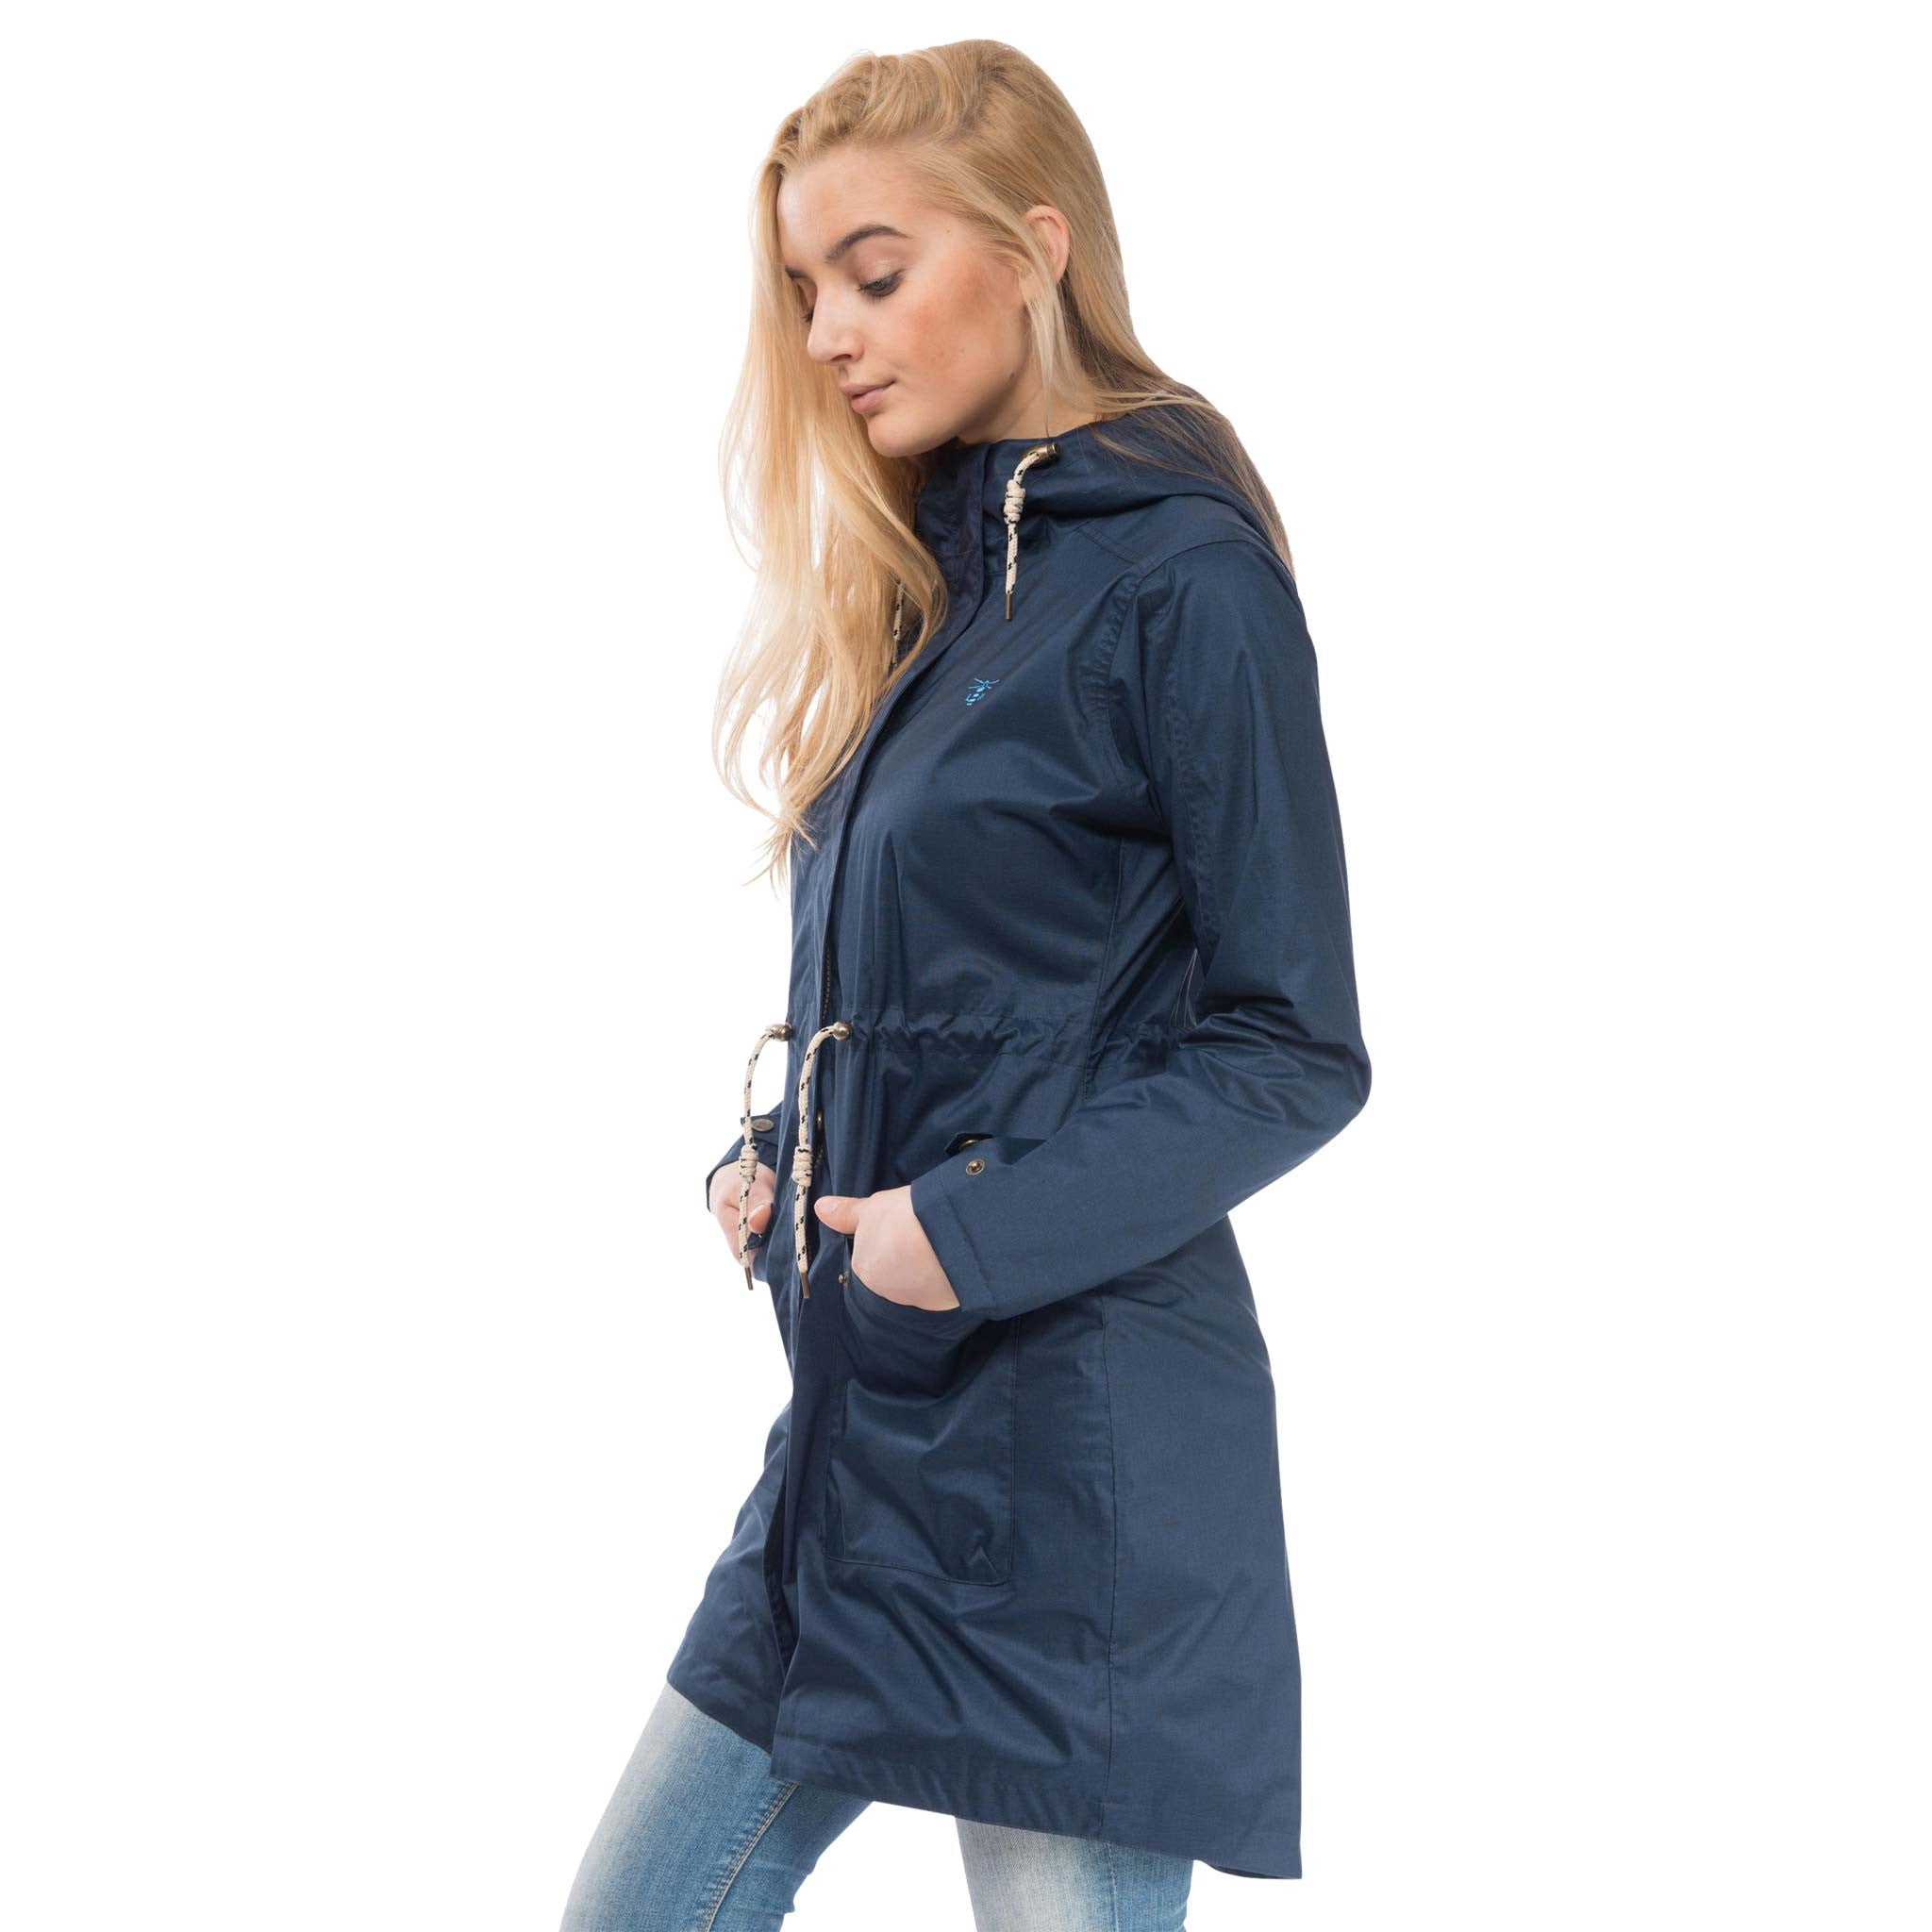 Fayda Womens Waterproof Parka in Night Sky Navy, Modelled Side View | Lighthouse